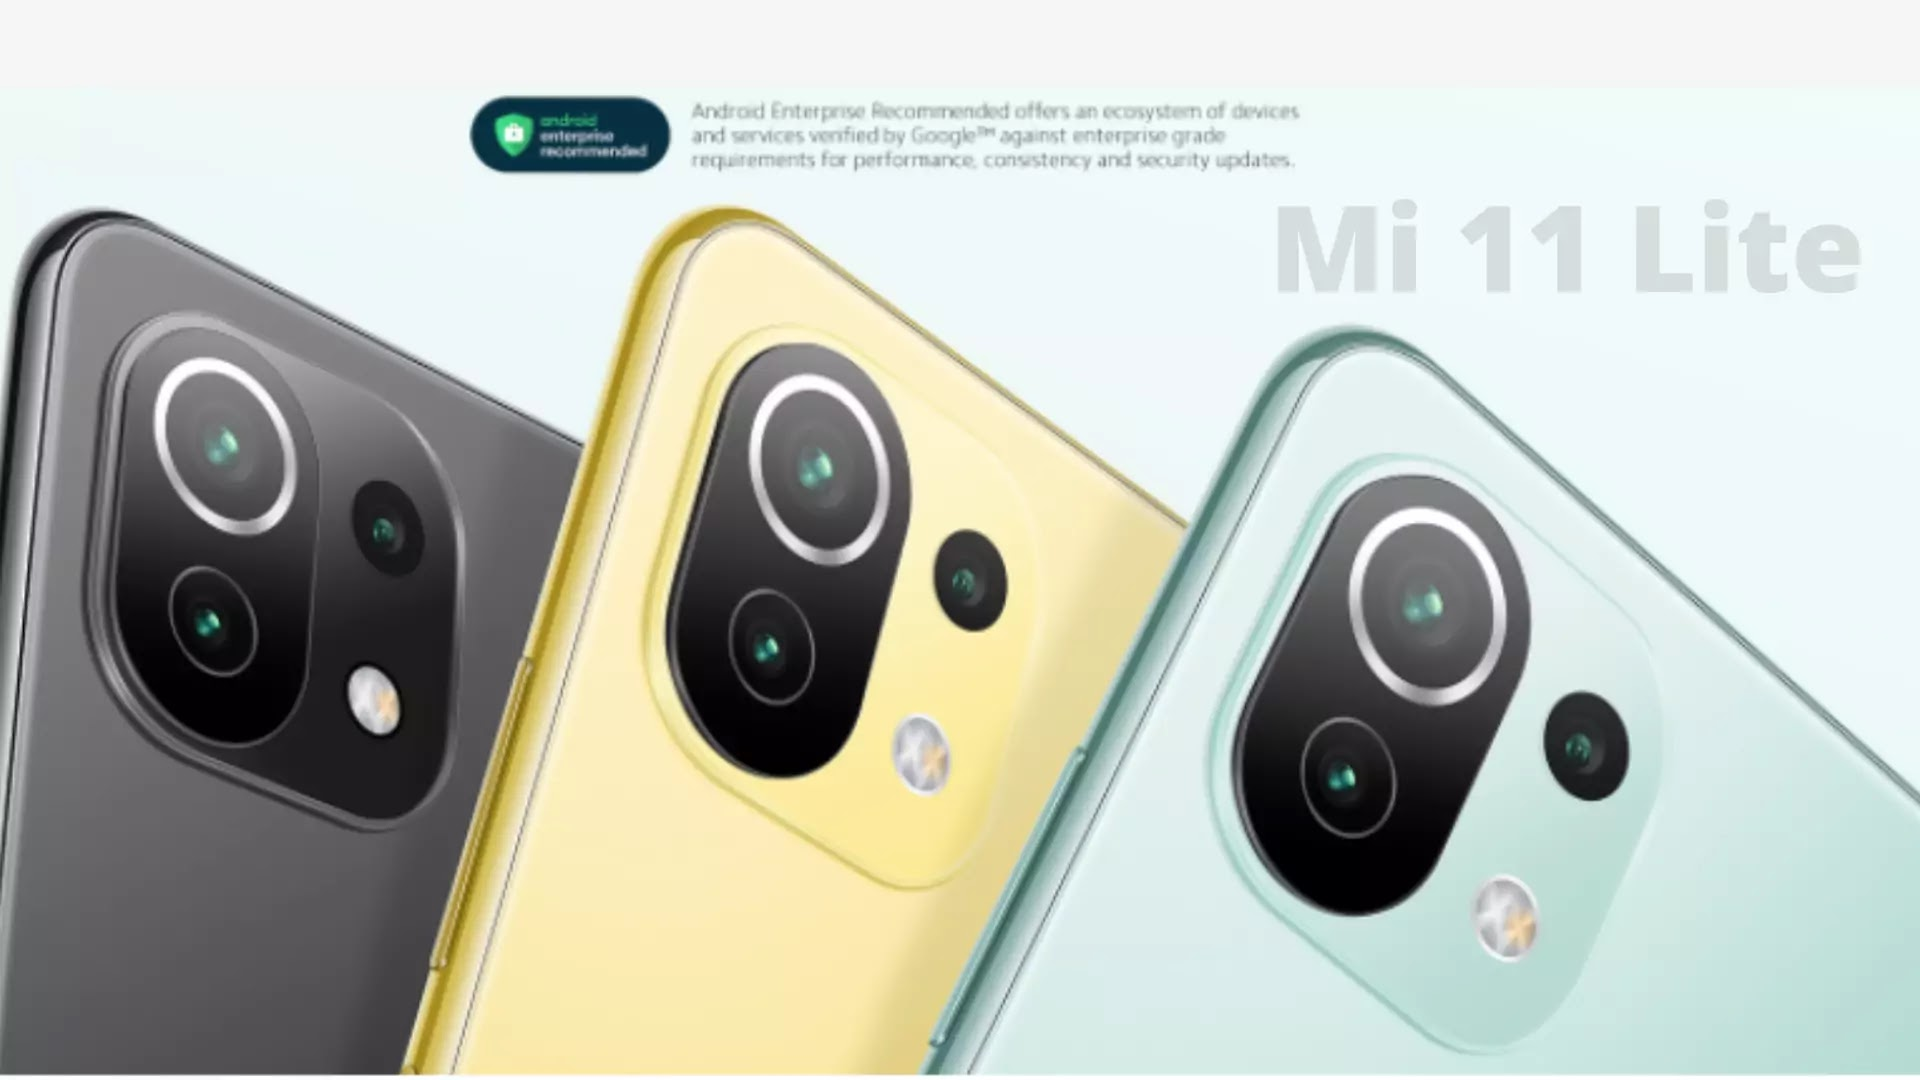 Mi 11 Lite will be launched in India